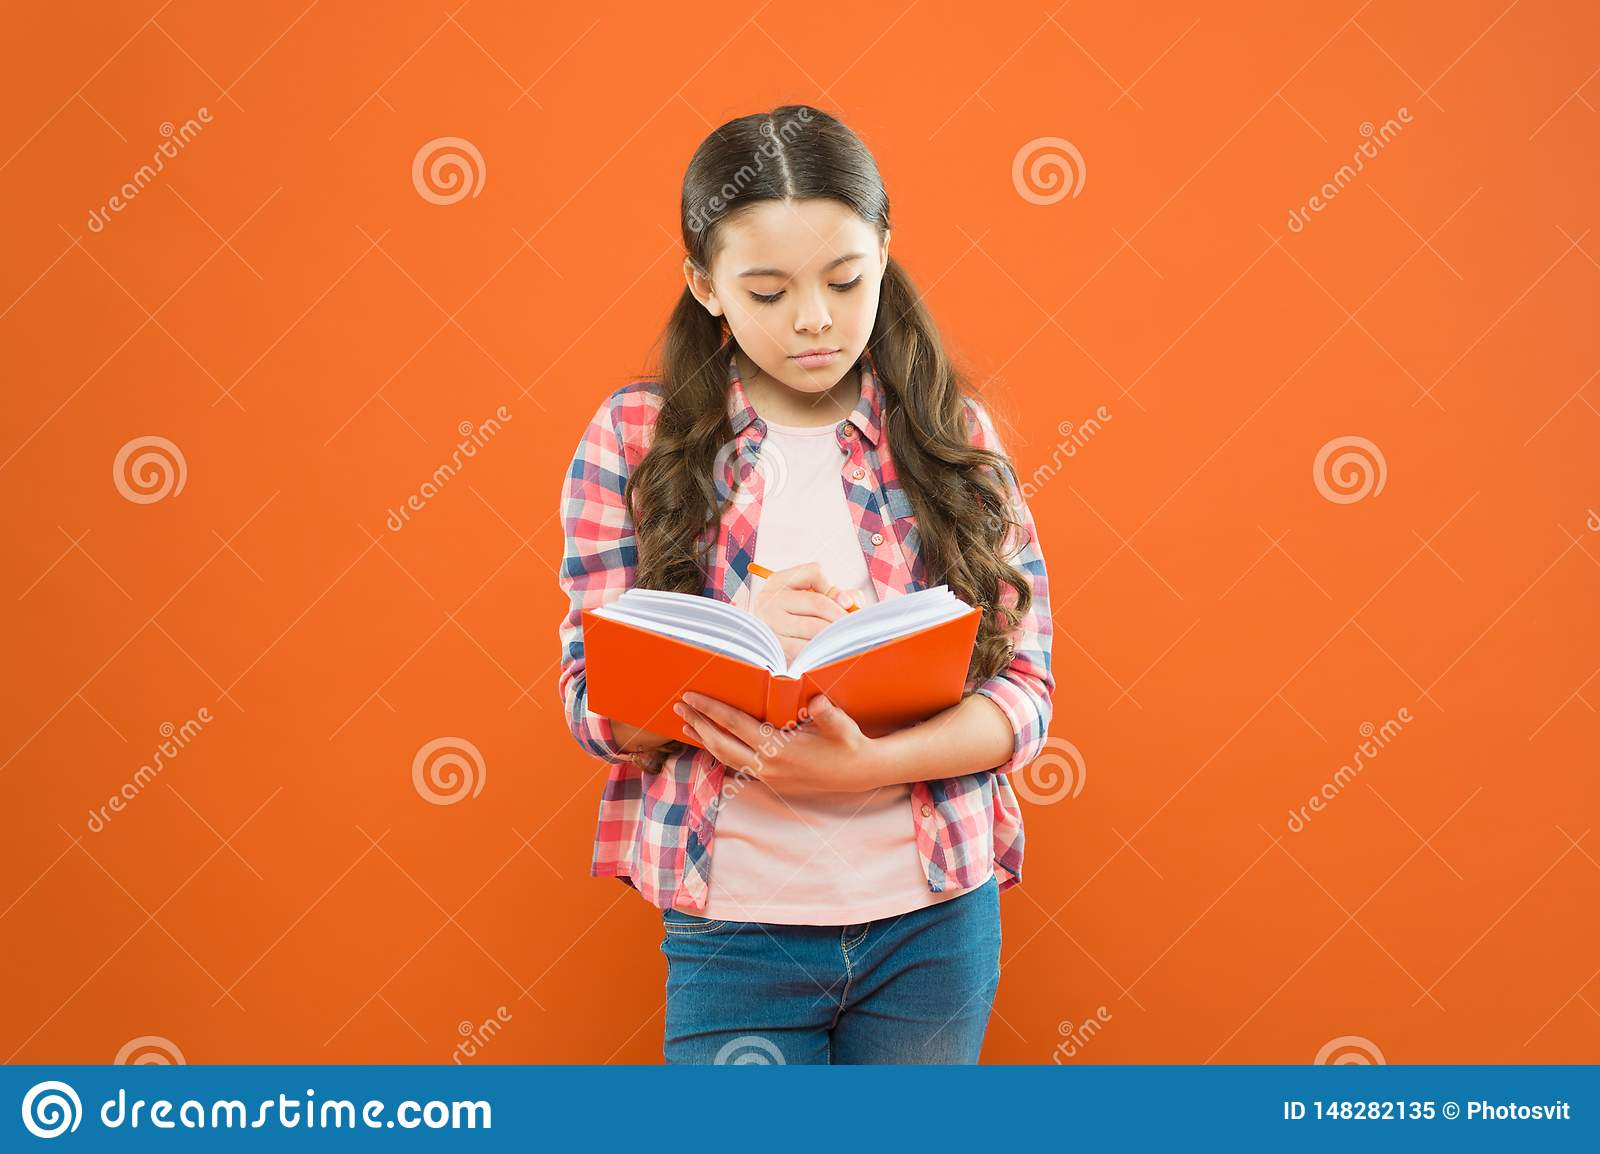 Study language. Girl cute write down idea notes. Notes to remember. Write essay or notes. Exercising writing workbook